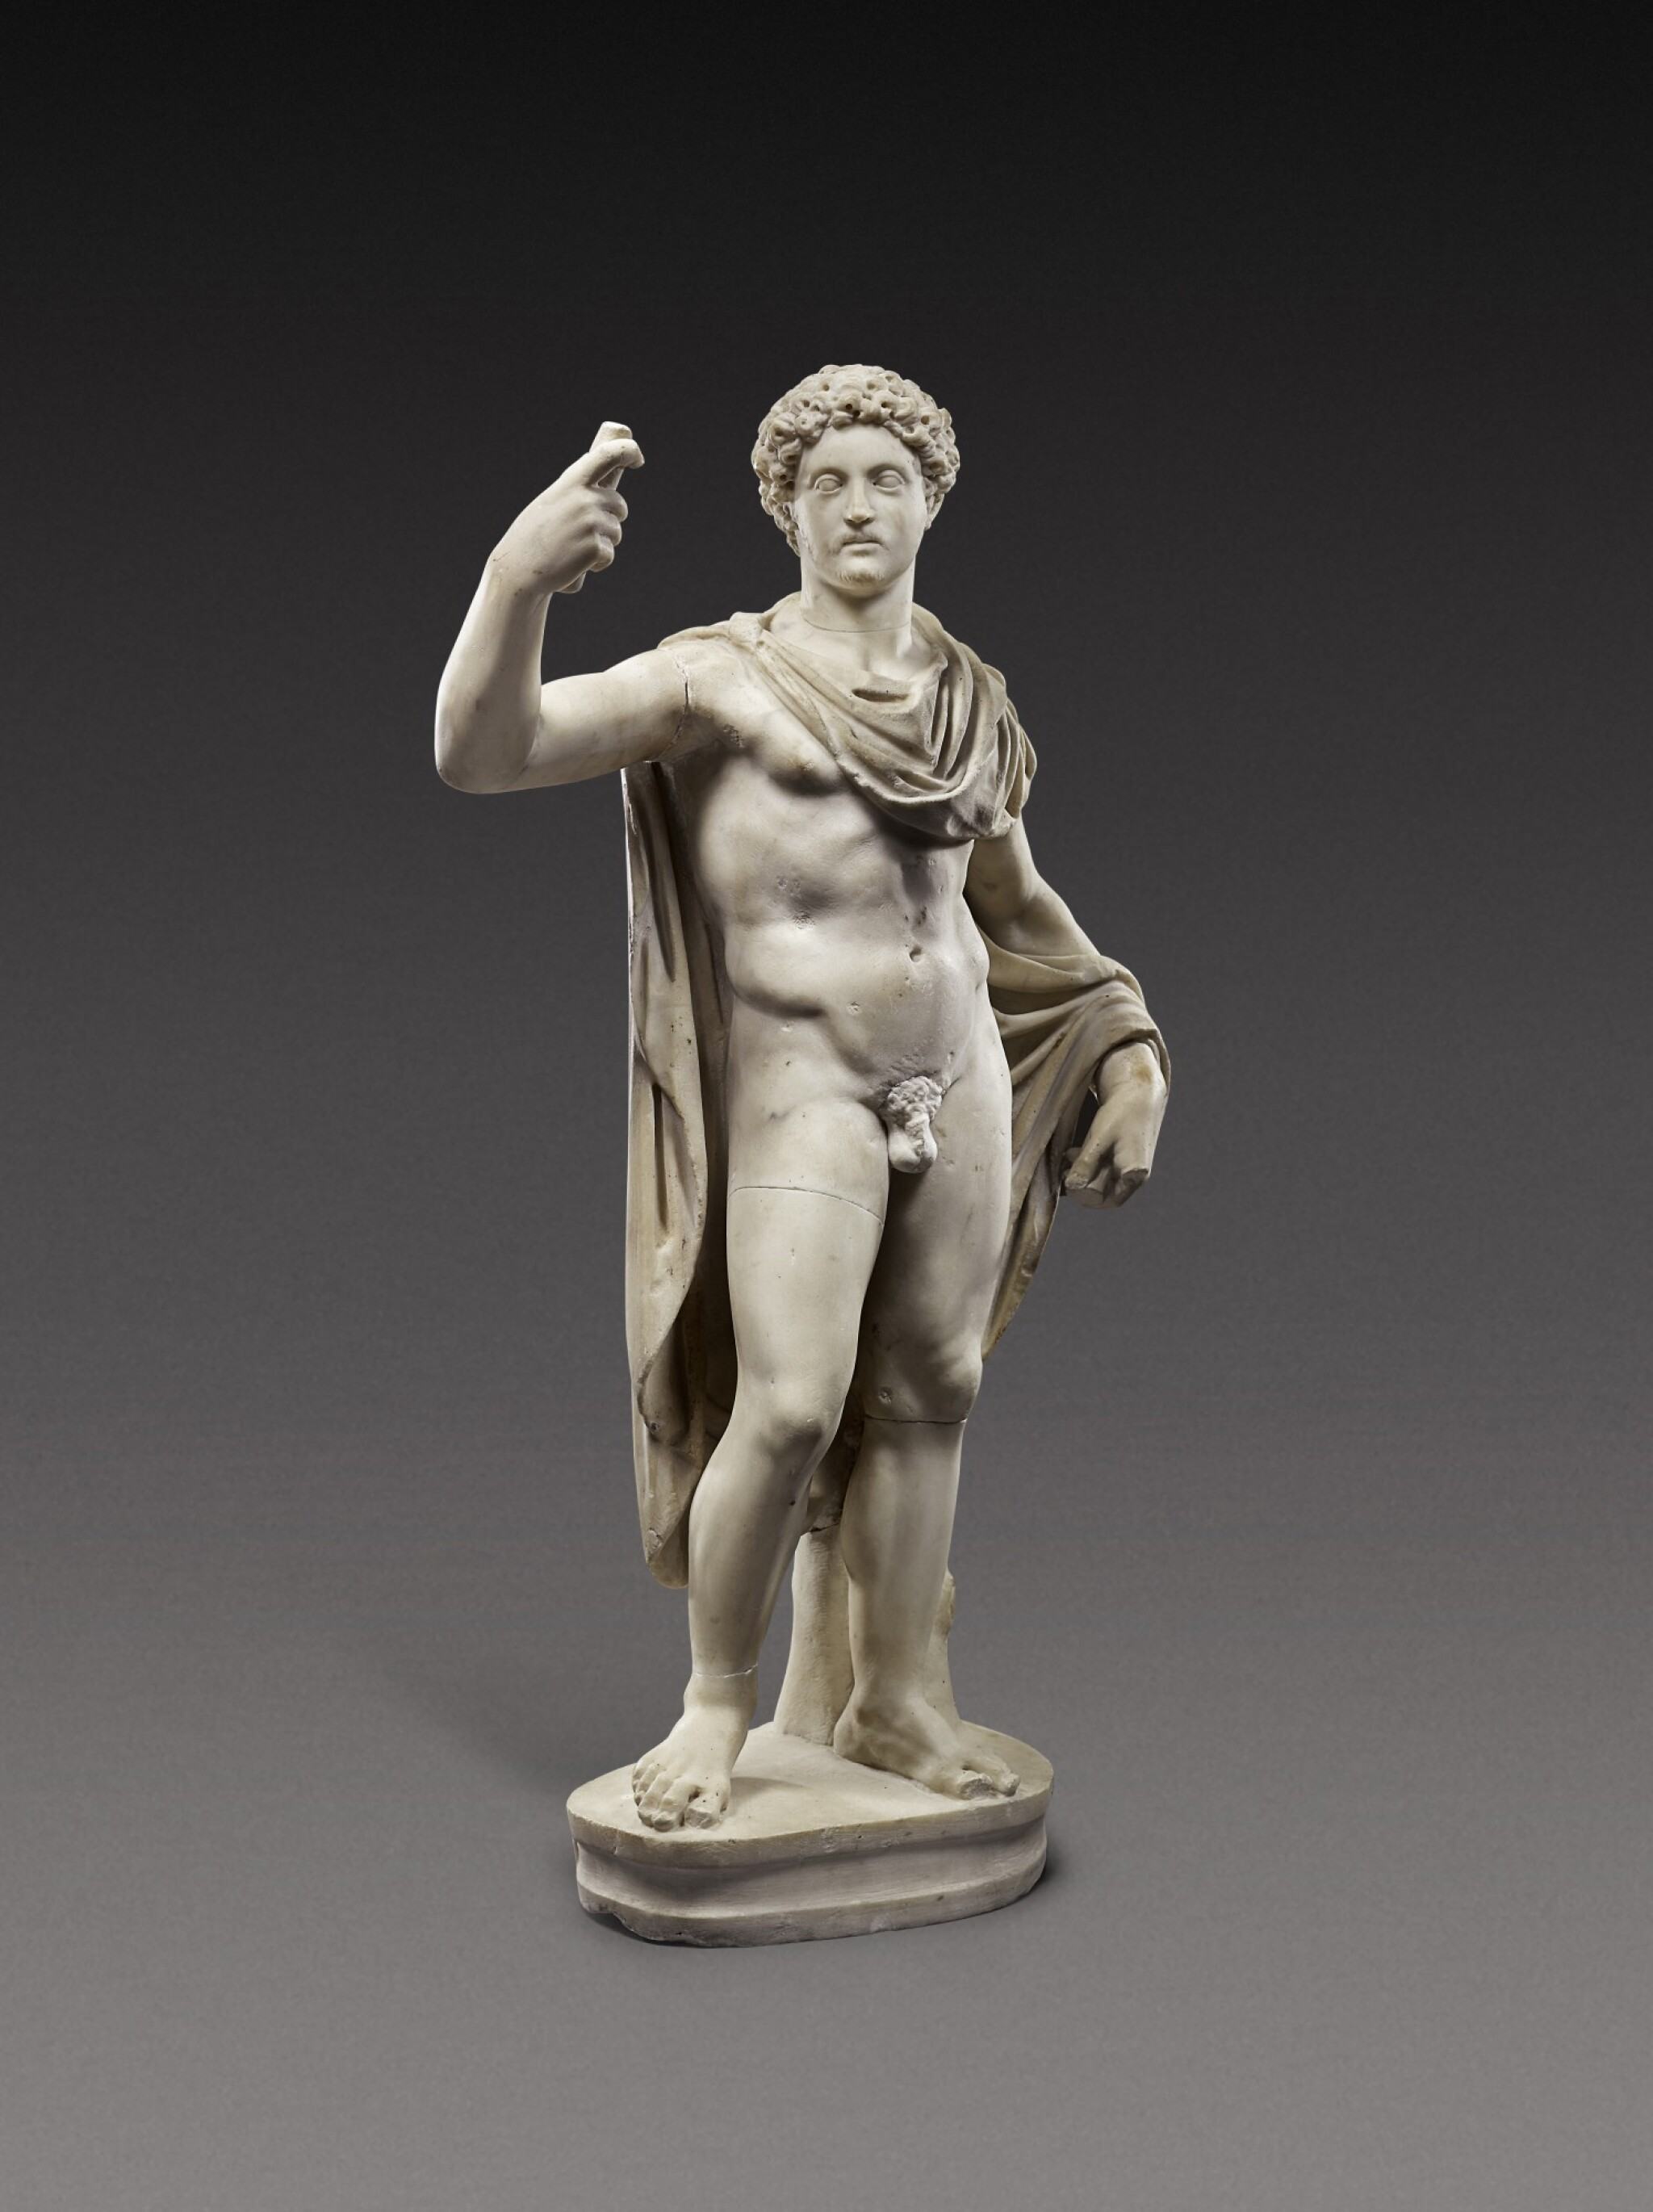 View 1 of Lot 67. A Roman Marble Figure of a Youth, circa 2nd Century A.D., with 18th-Century Head of Marcus Aurelius.